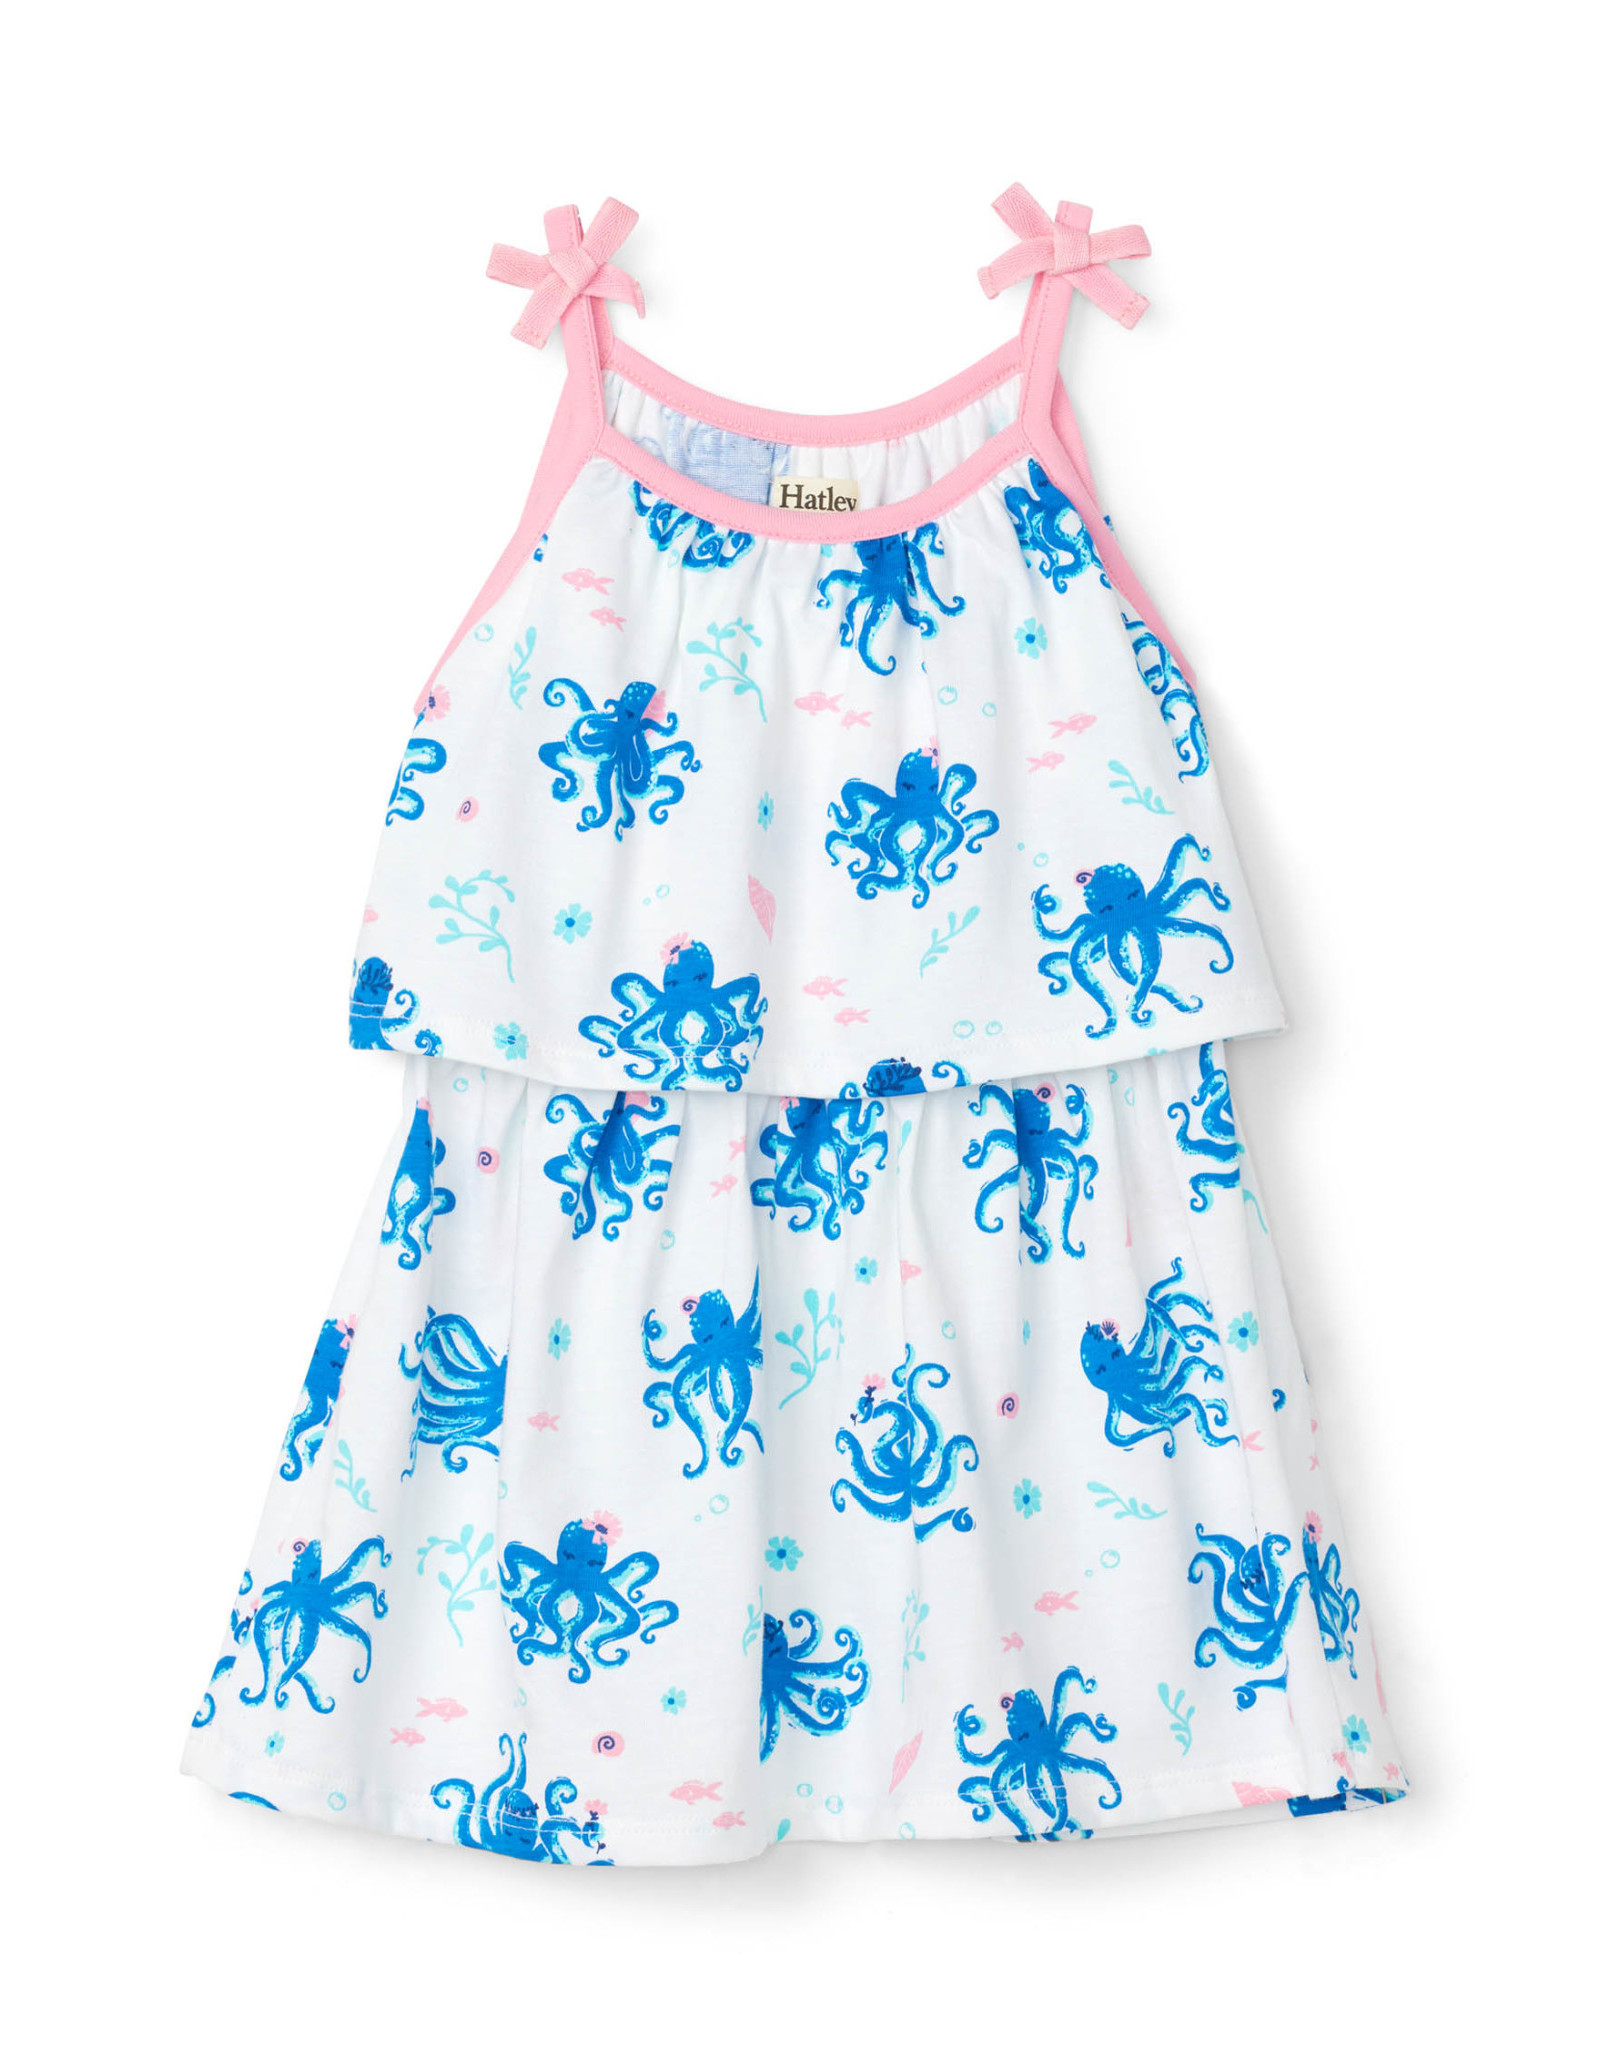 Hatley Pretty Octopuses Baby Layered Dress